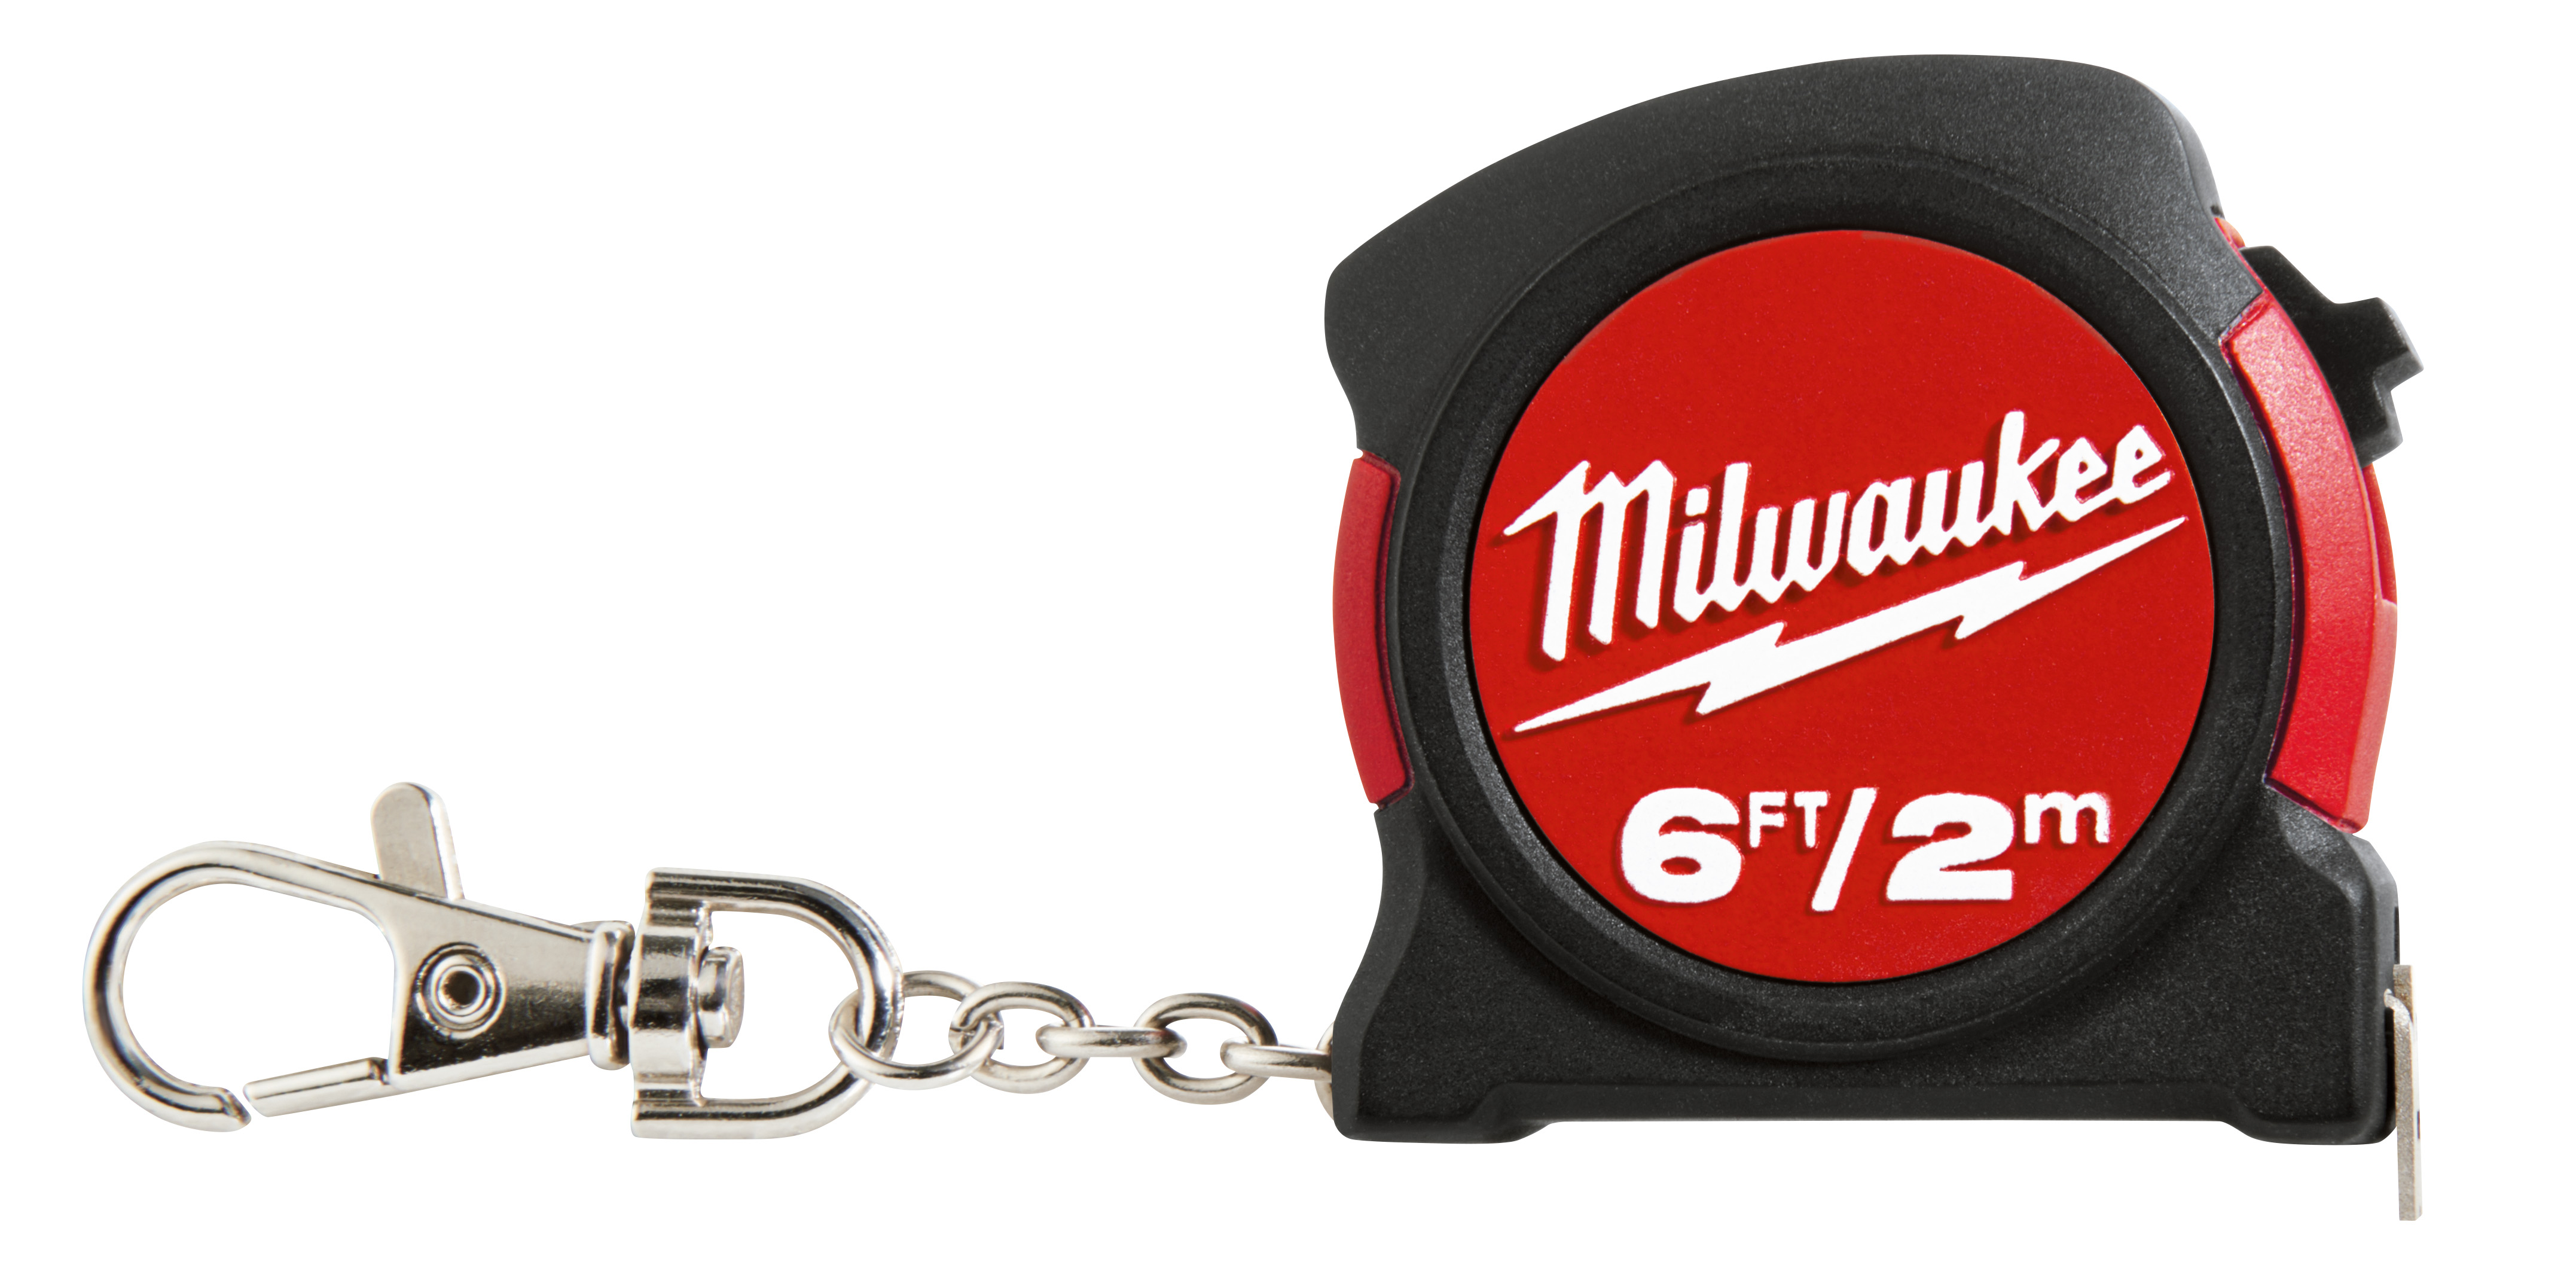 Milwaukee® 48-22-5506 Measuring Tape With Belt Clip and Key Chain, 6 ft L x 13 mm W Blade, Steel Blade, Imperial/Metric Measuring System, 1/16 in Top, 1 mm Bottom Graduation